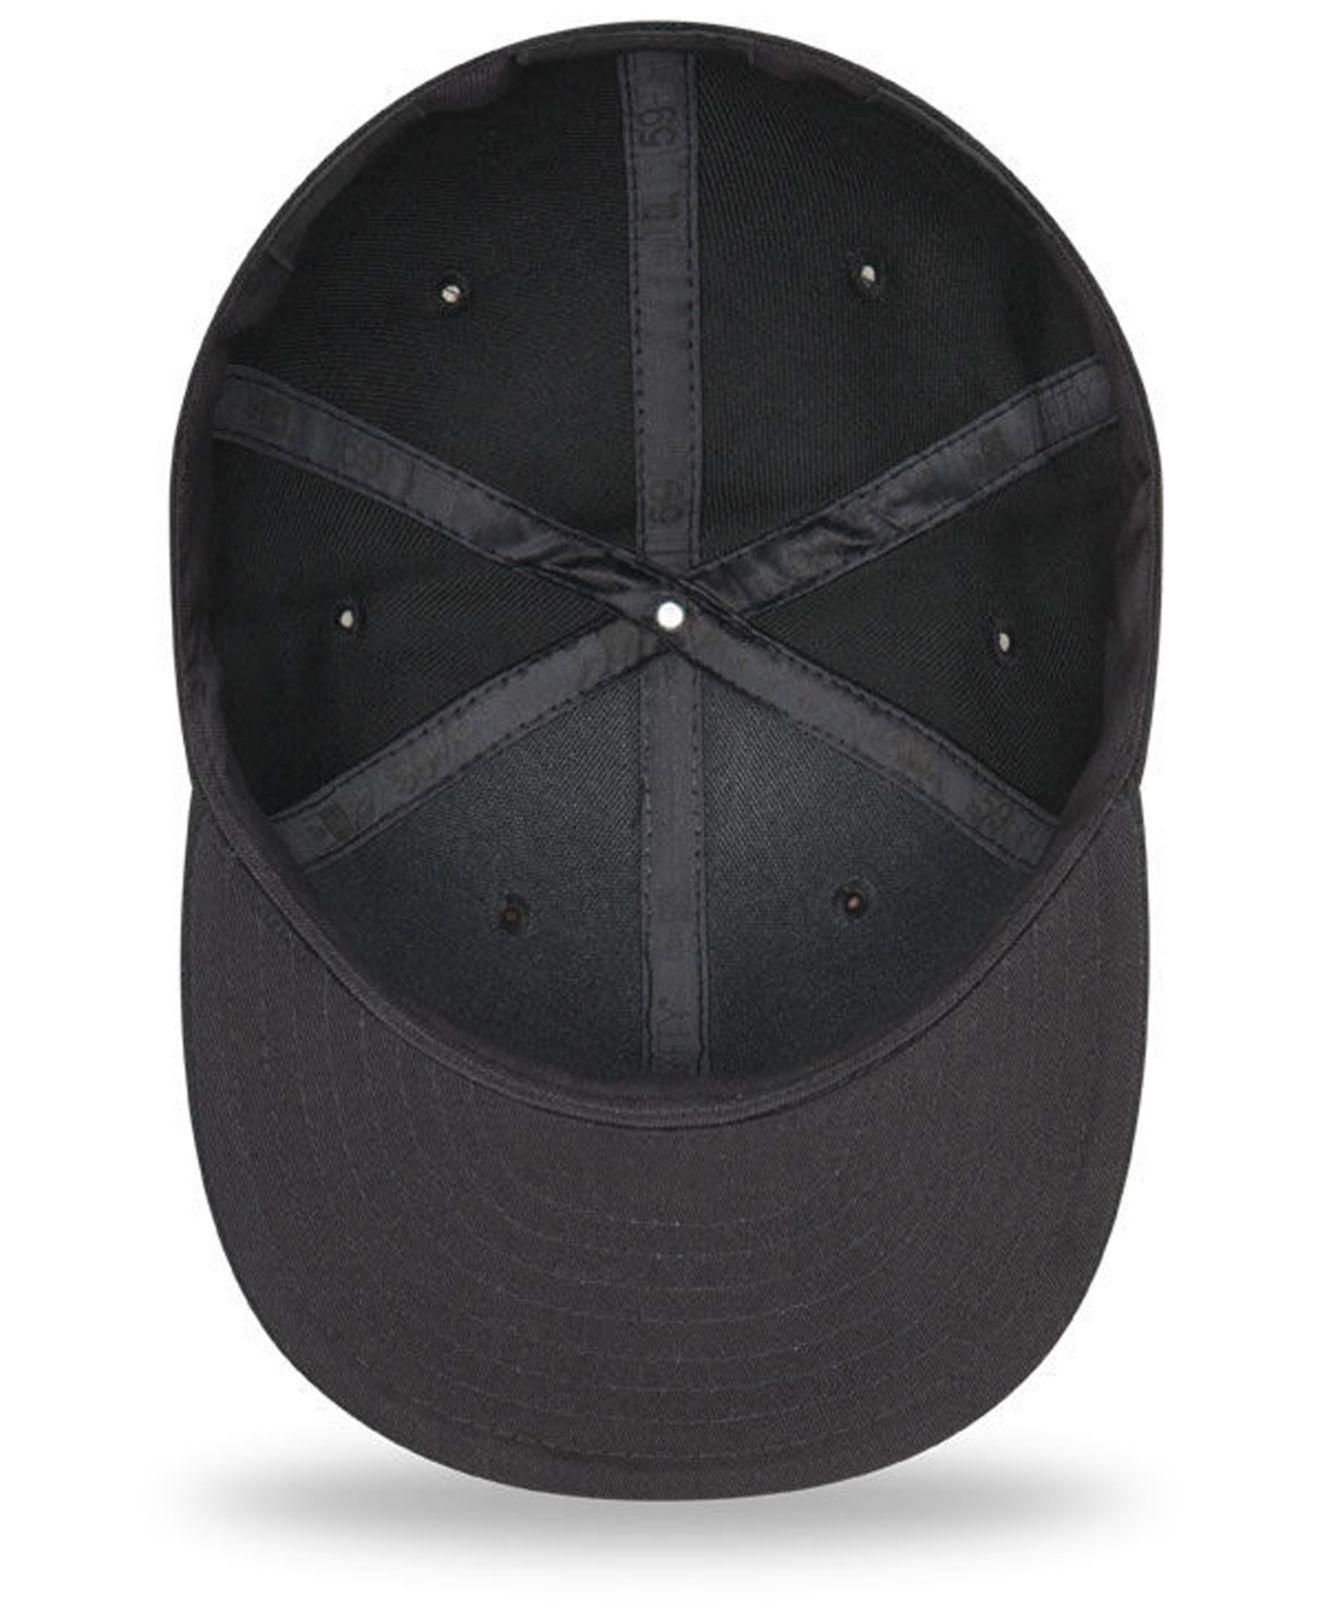 new product 523fe bed89 ... reduced ktz detroit tigers blackout 59fifty fitted cap for men lyst. view  fullscreen c1778 965d9